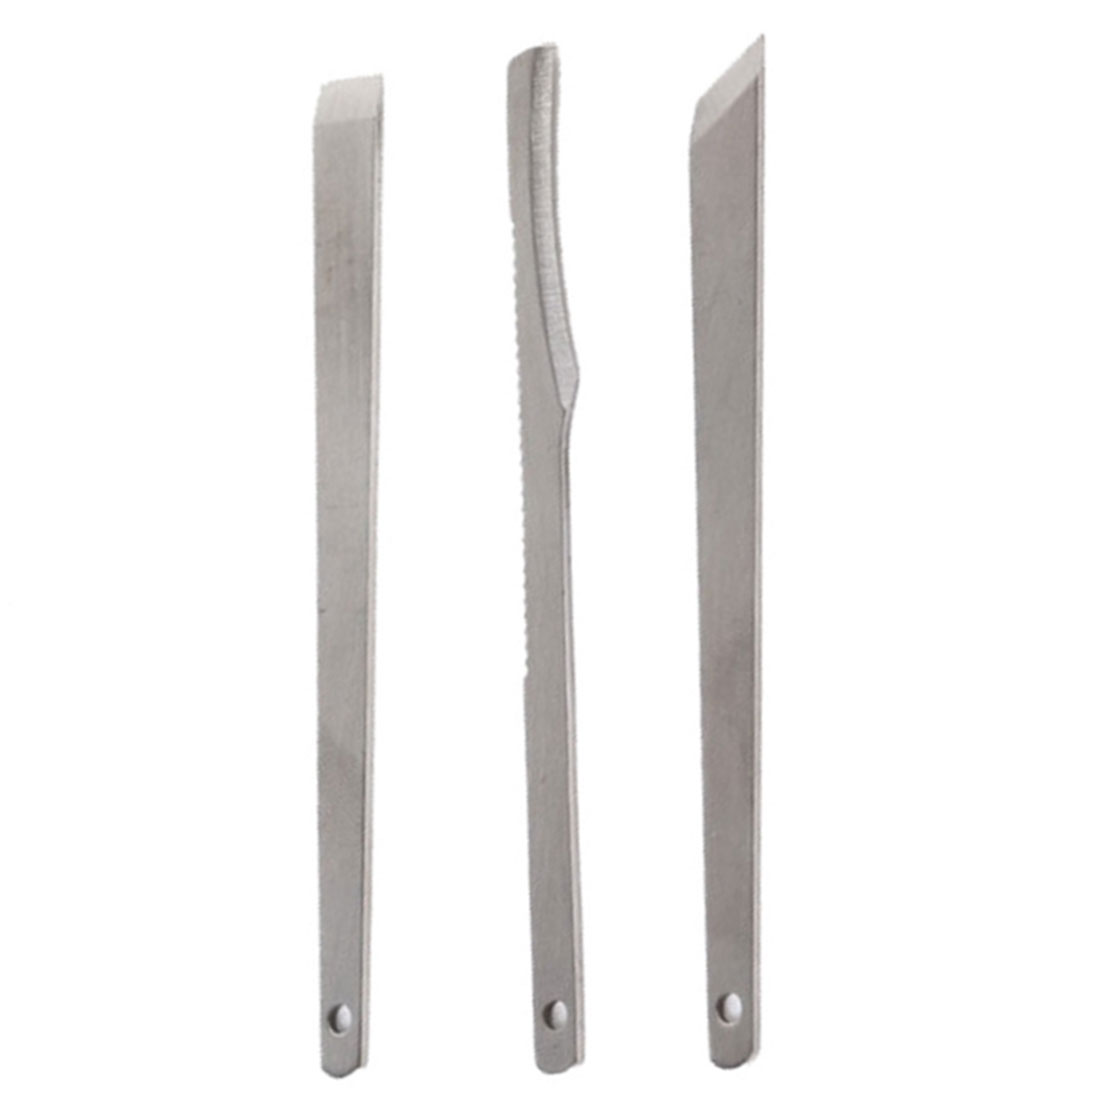 2018 New Pedicure Knife Stainless Steel Repairing Old Nails Nail Handle Blade Set Manicure Dead Skin Pedicure Tool 3pcs Pedicure